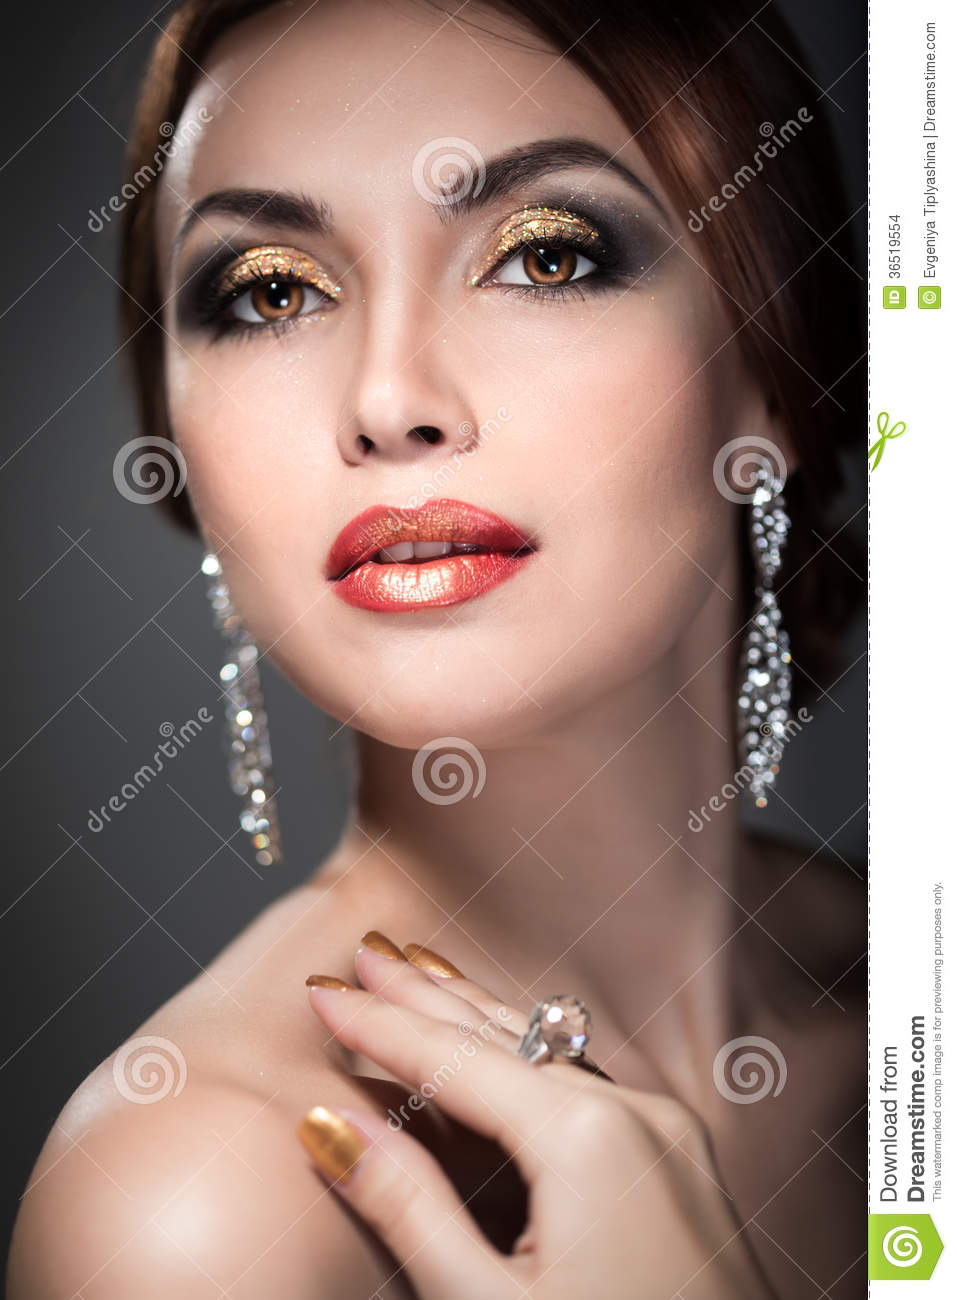 Woman With Bright Makeup Stock Images - Image 36519554